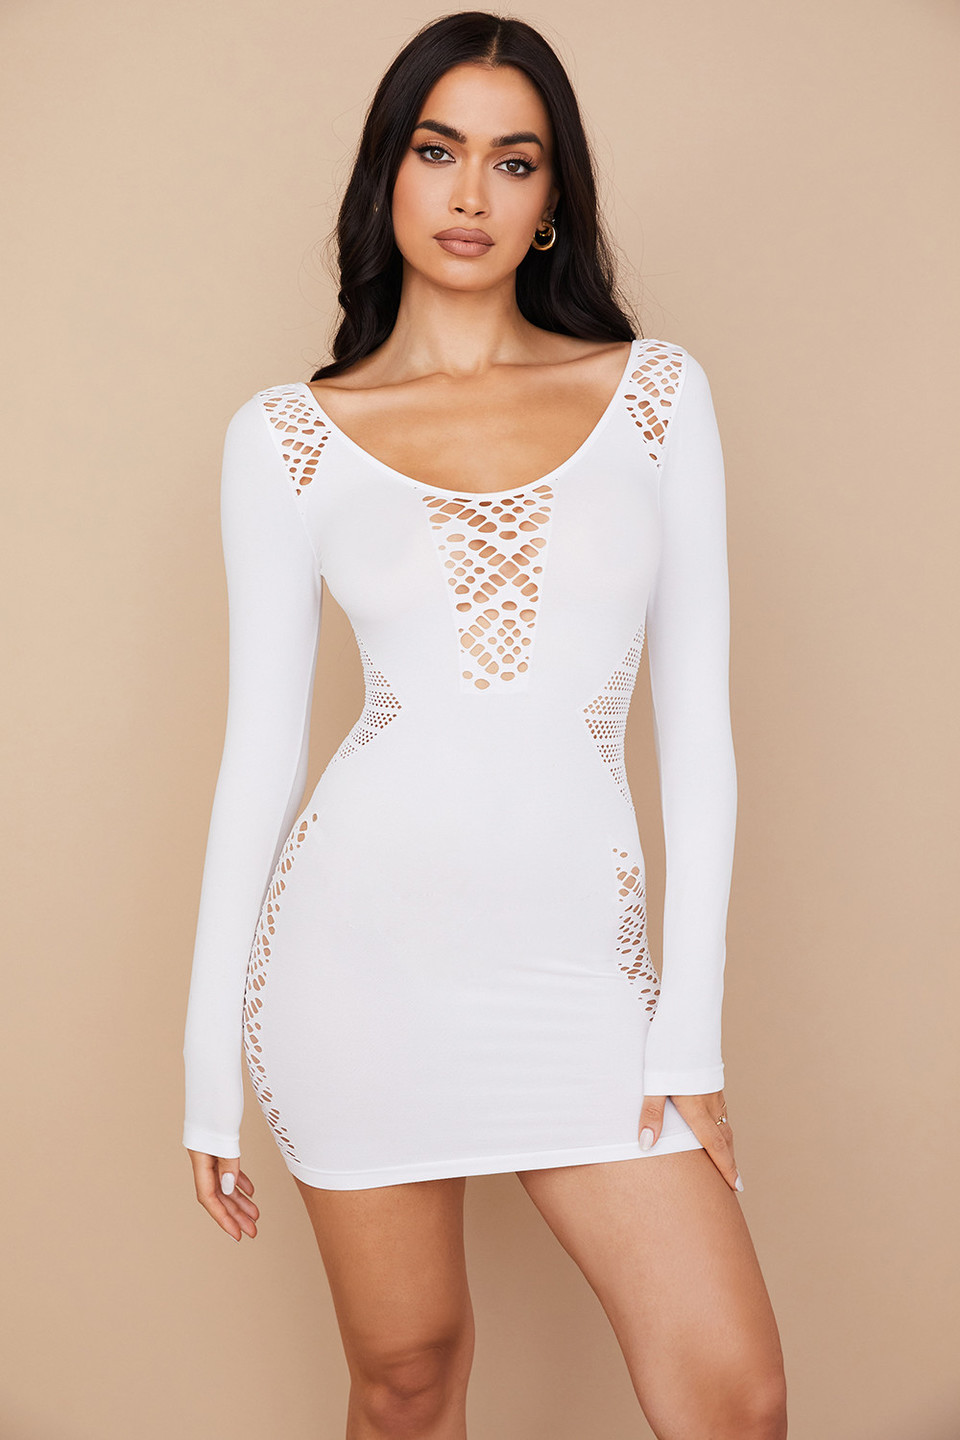 Alana White Stretch Knit Mini Dress